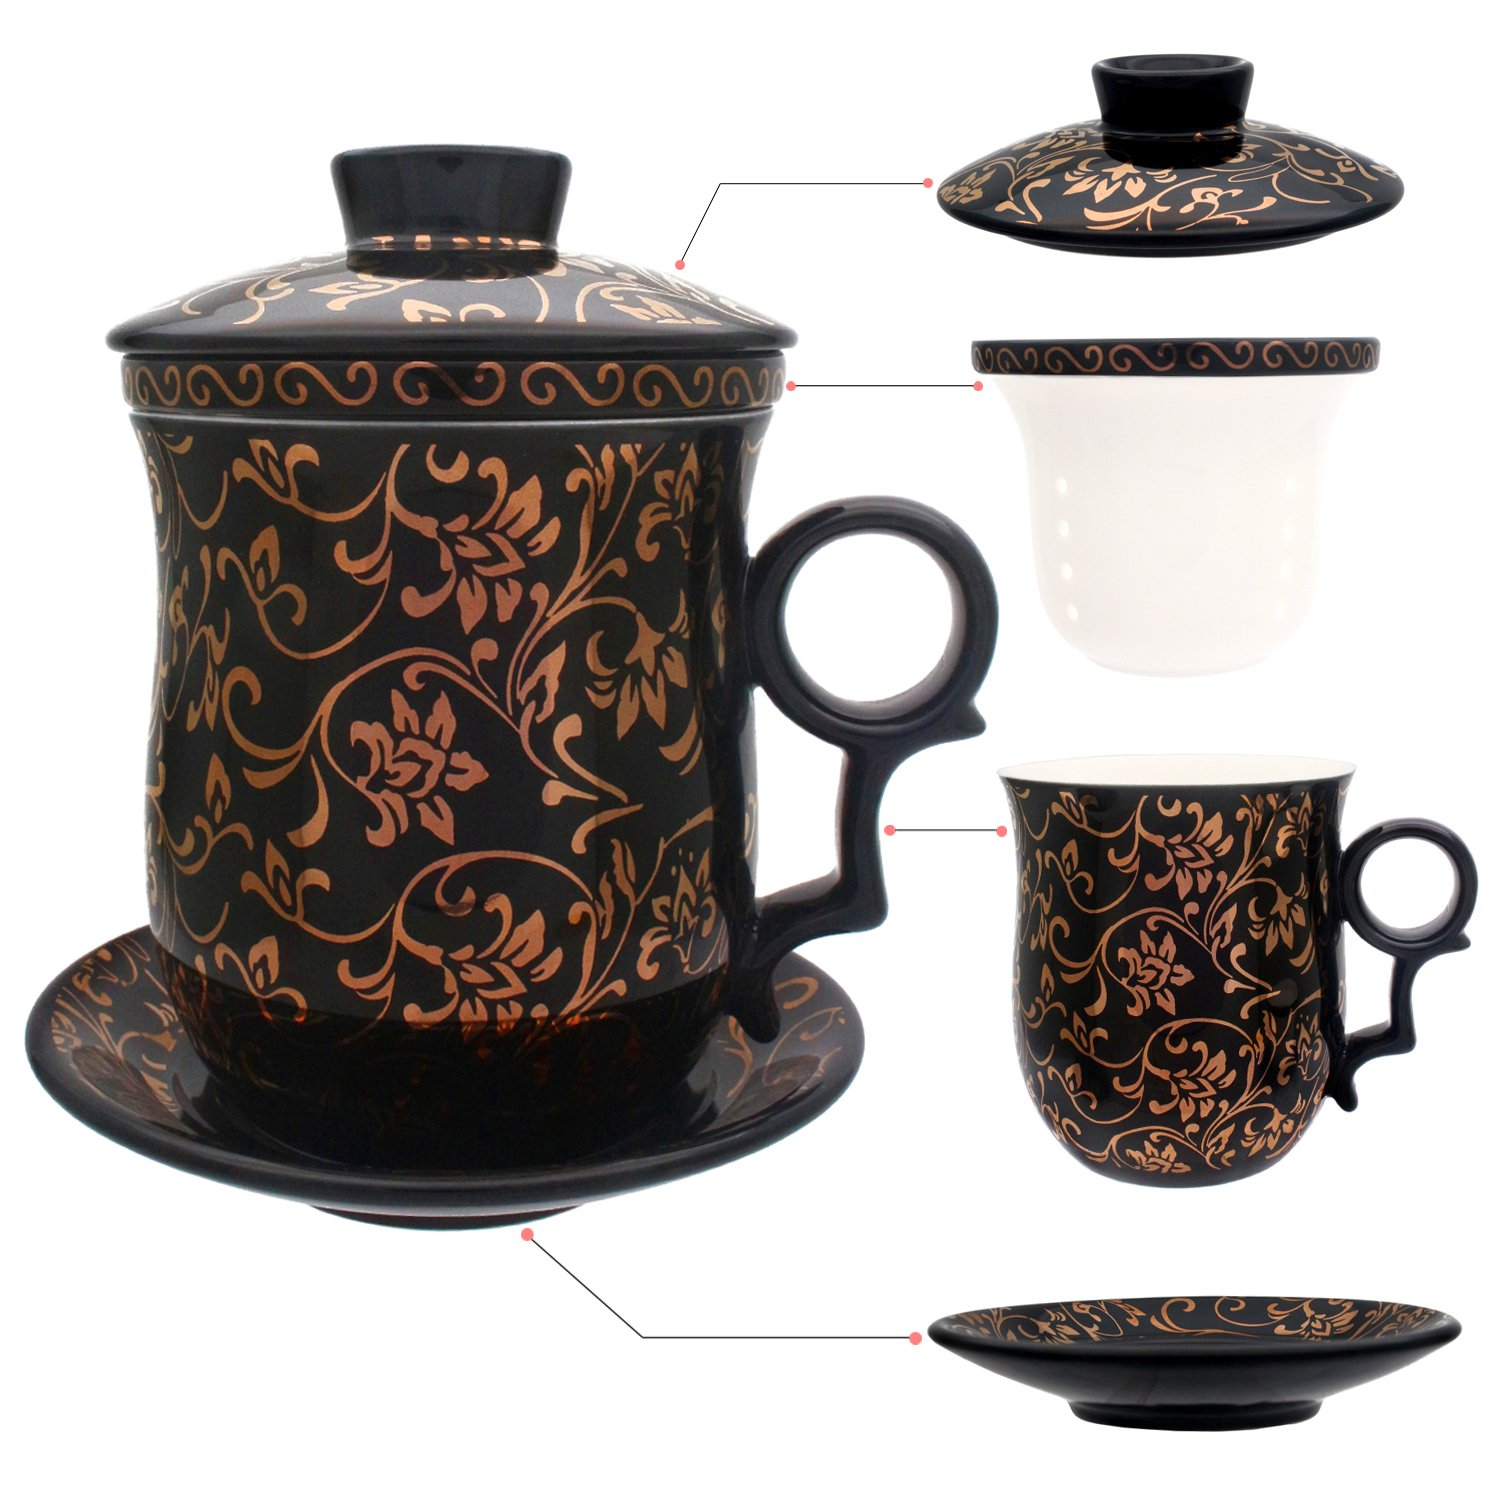 hollihi tasse th avec couvercle soucoupe infuseur porcelaine chinoise inspid co. Black Bedroom Furniture Sets. Home Design Ideas